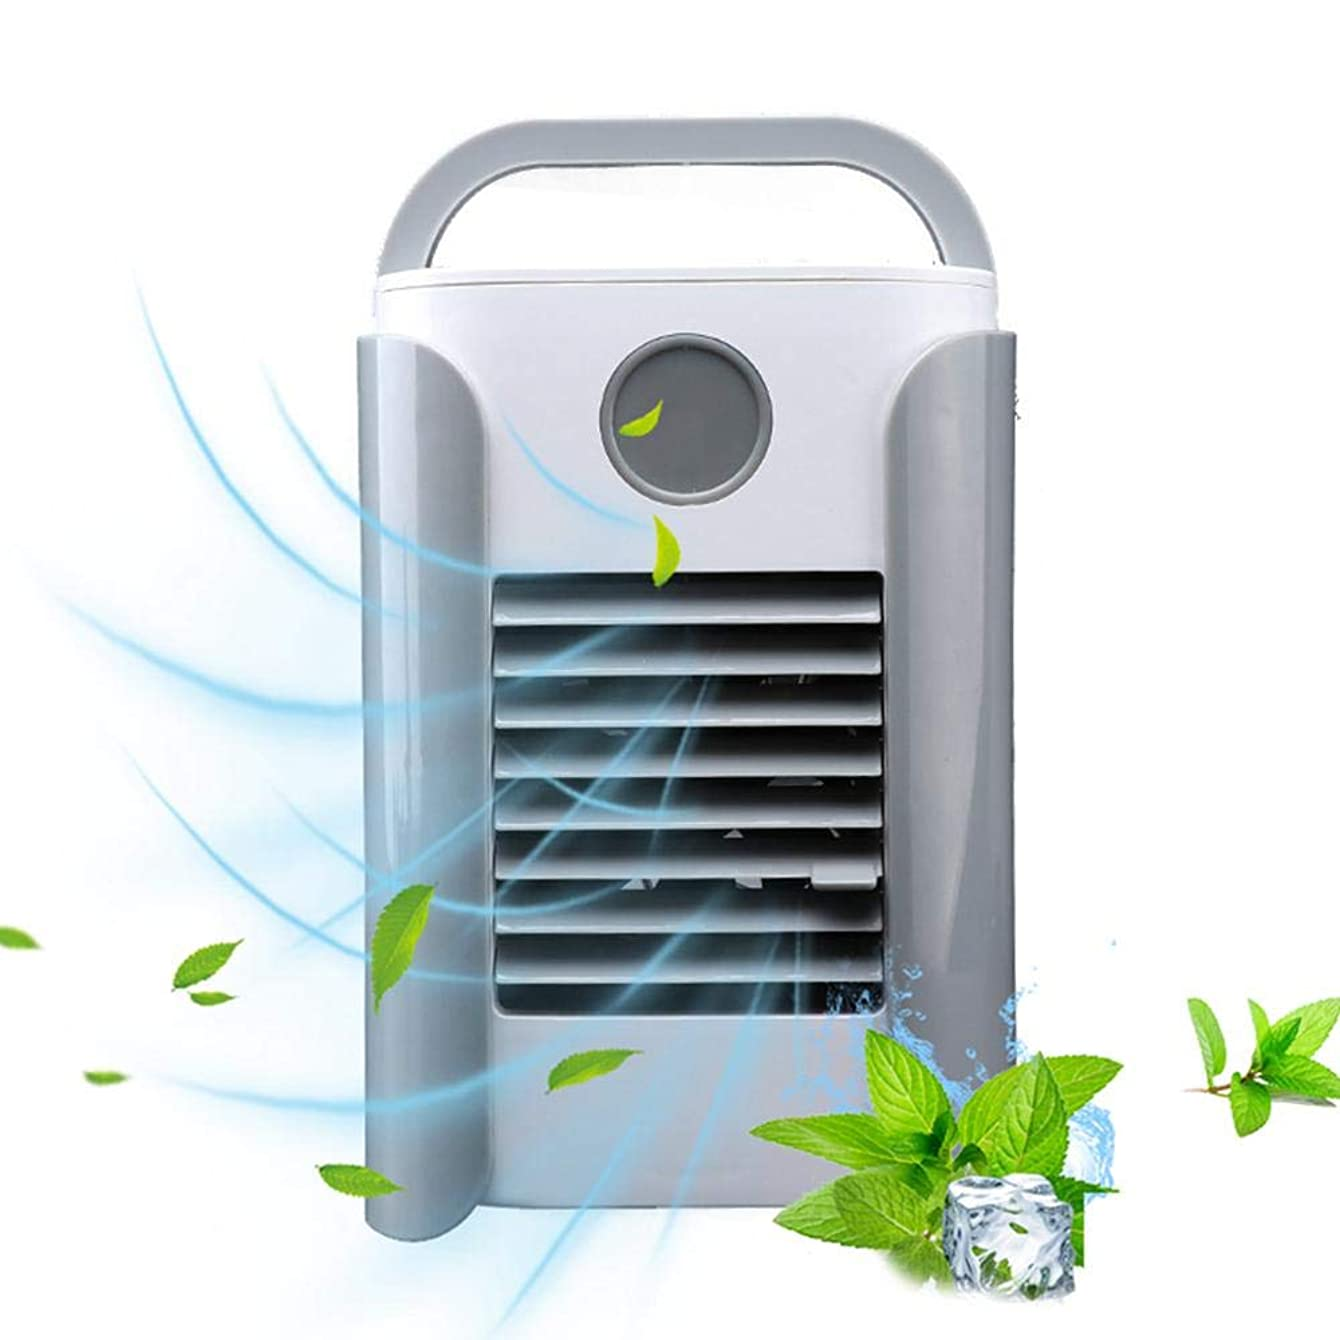 Volwco Air Cooler Mini Portable Air Conditioner Fan, 3 in 1 New USB Charging Air Conditioner Fan Personal Refrigerator Air Cooler Nano Fan Small Evaporative Cooler Air Humidifier